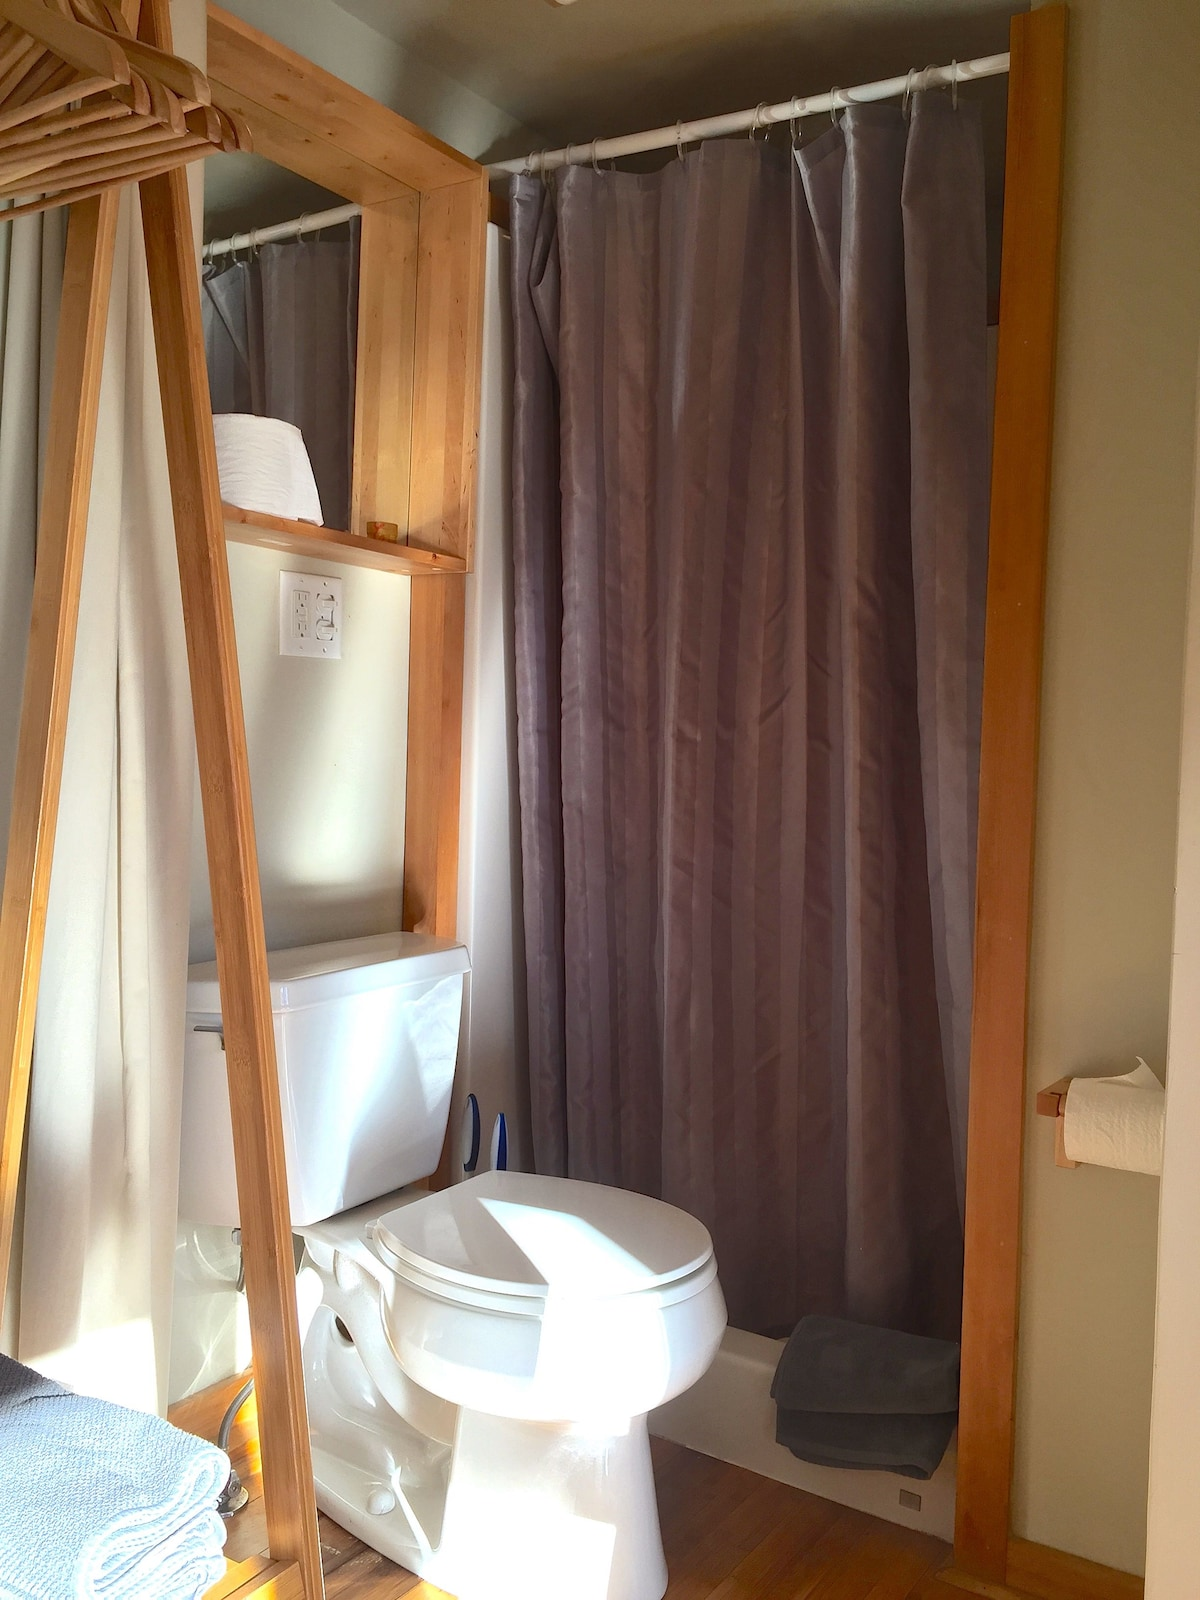 A compact bathroom is separated by a curtain. Please plan to bring your own toiletries. Fresh towels are provided.